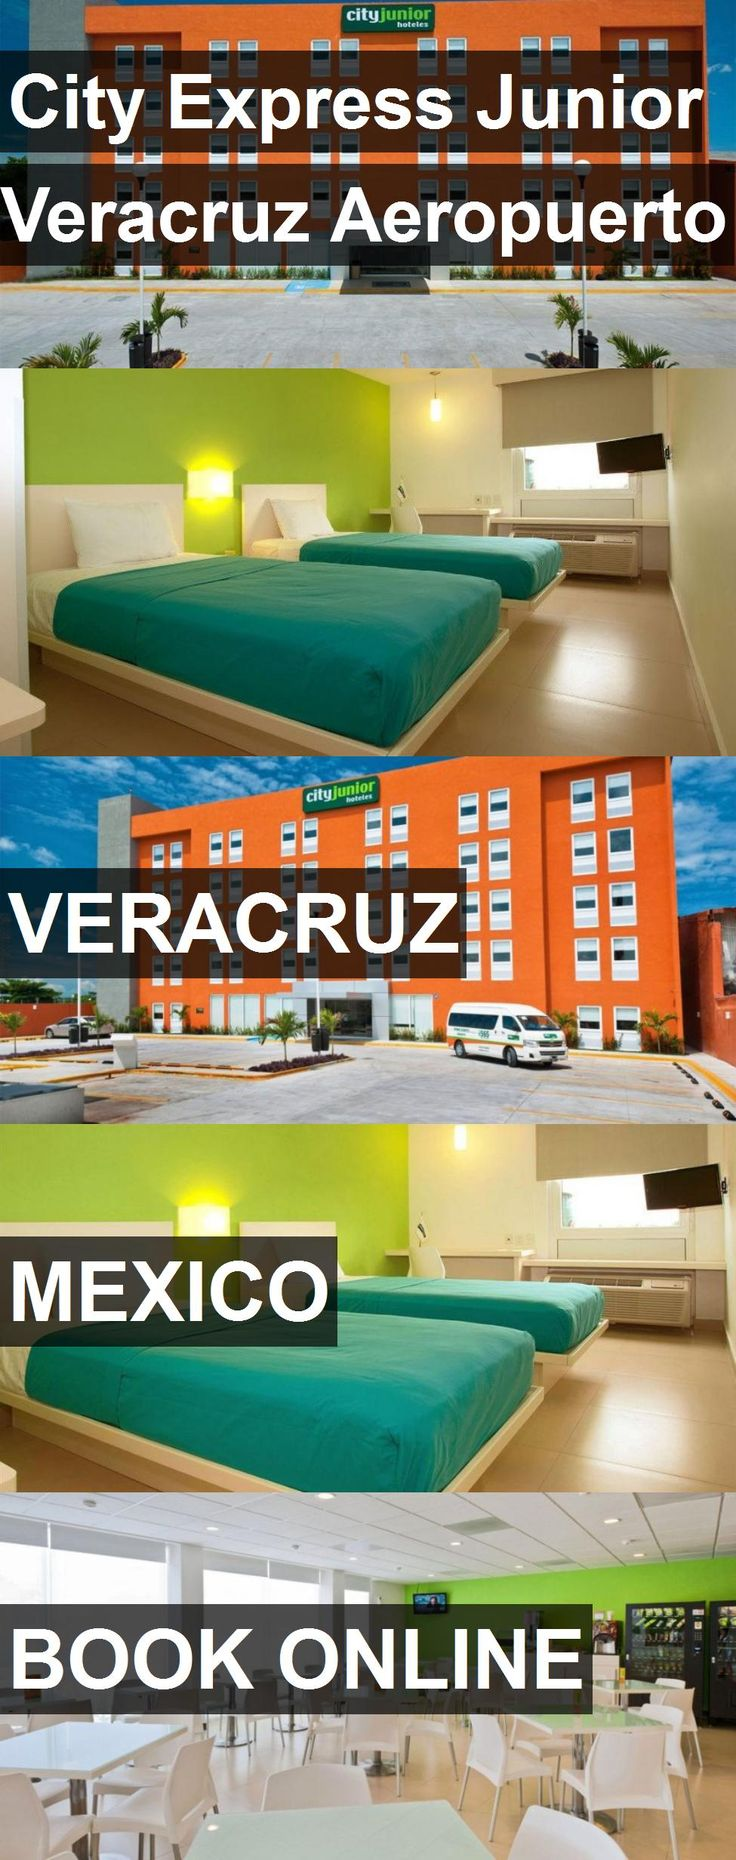 Hotel City Express Junior Veracruz Aeropuerto in Veracruz, Mexico. For more information, photos, reviews and best prices please follow the link. #Mexico #Veracruz #CityExpressJuniorVeracruzAeropuerto #hotel #travel #vacation